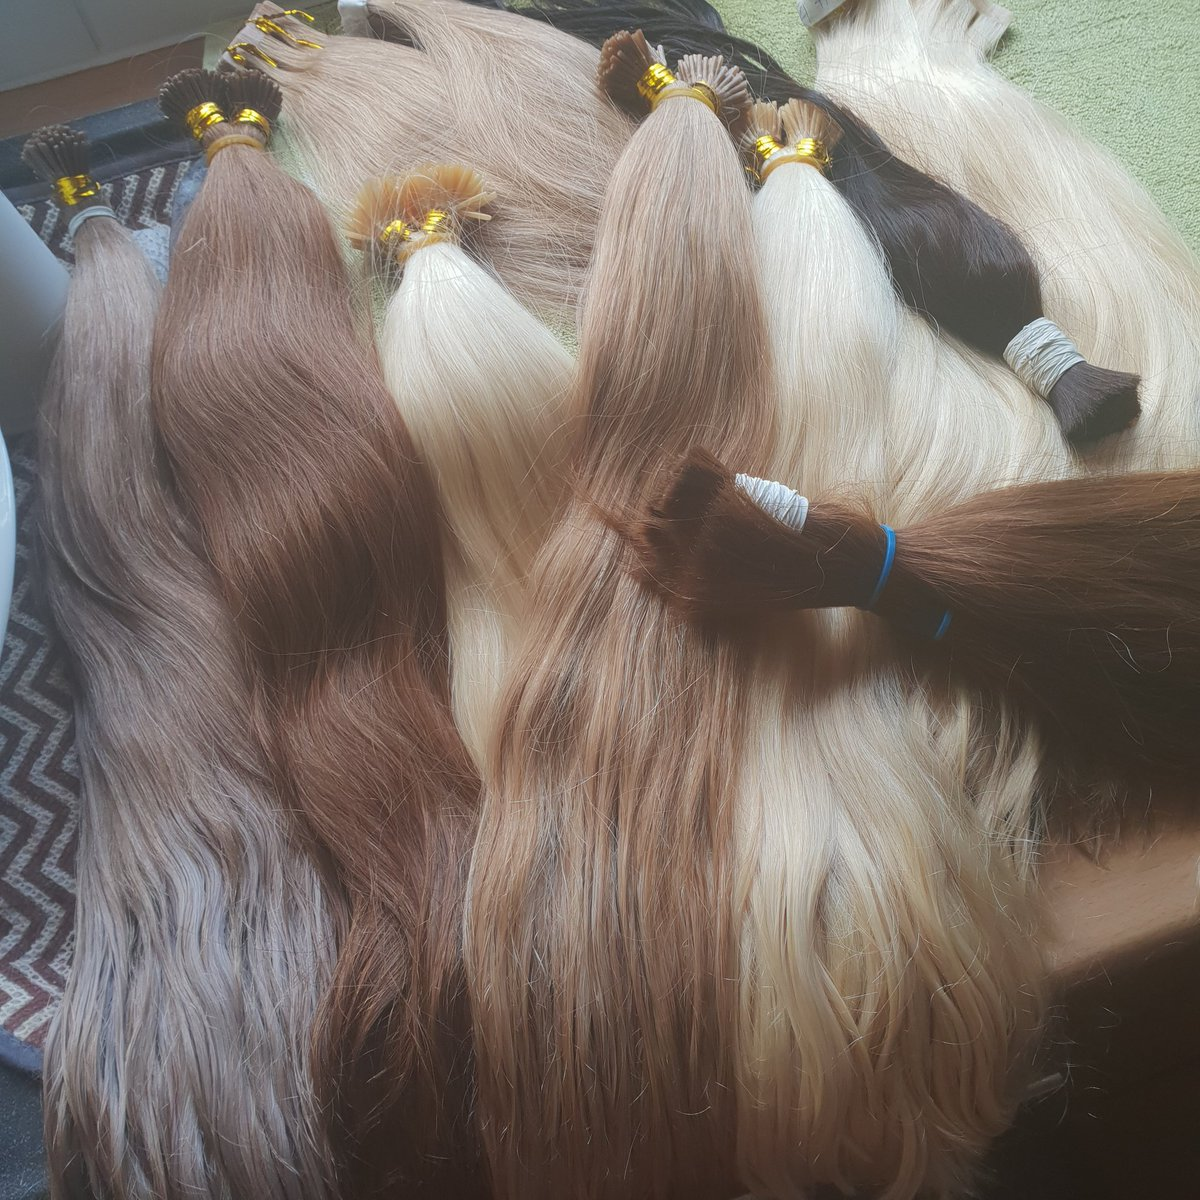 Organic Russian Hair Extensions And Supplies Helendent007 Twitter